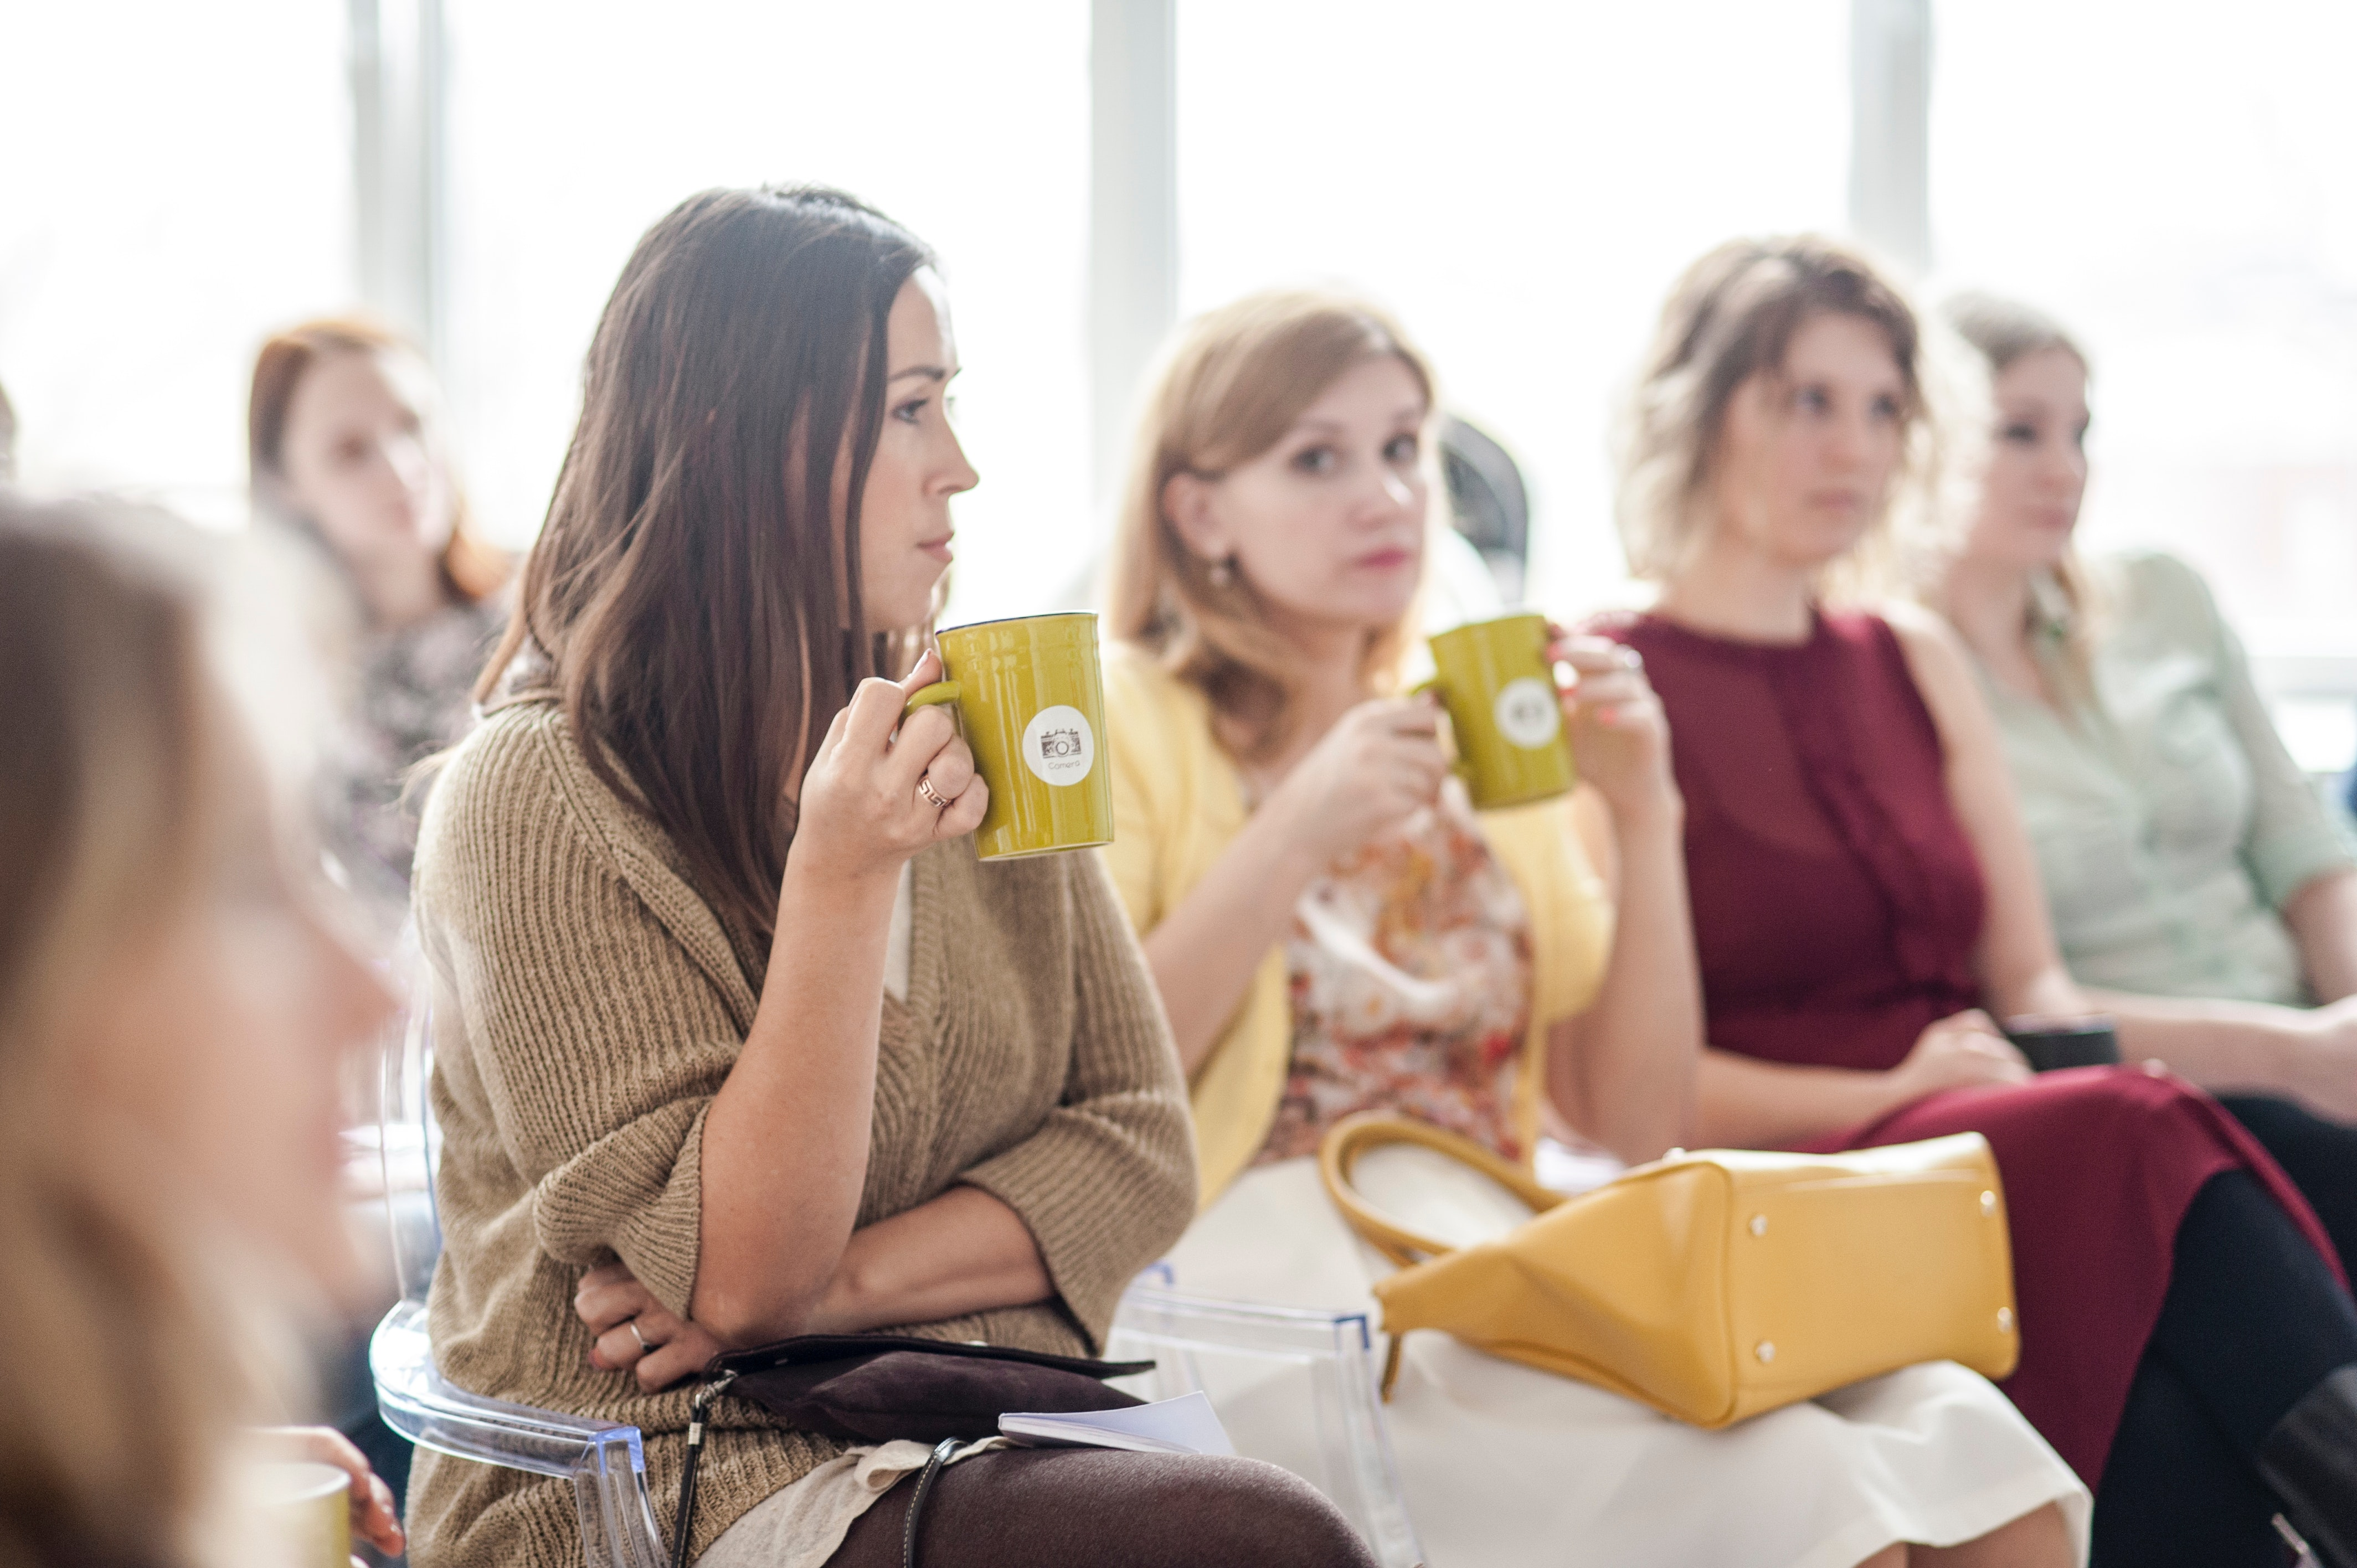 Woman Wearing Brown Corduroy Coat Holding Mug While Sitting on Chair, People, Women, Wear, Togetherness, HQ Photo